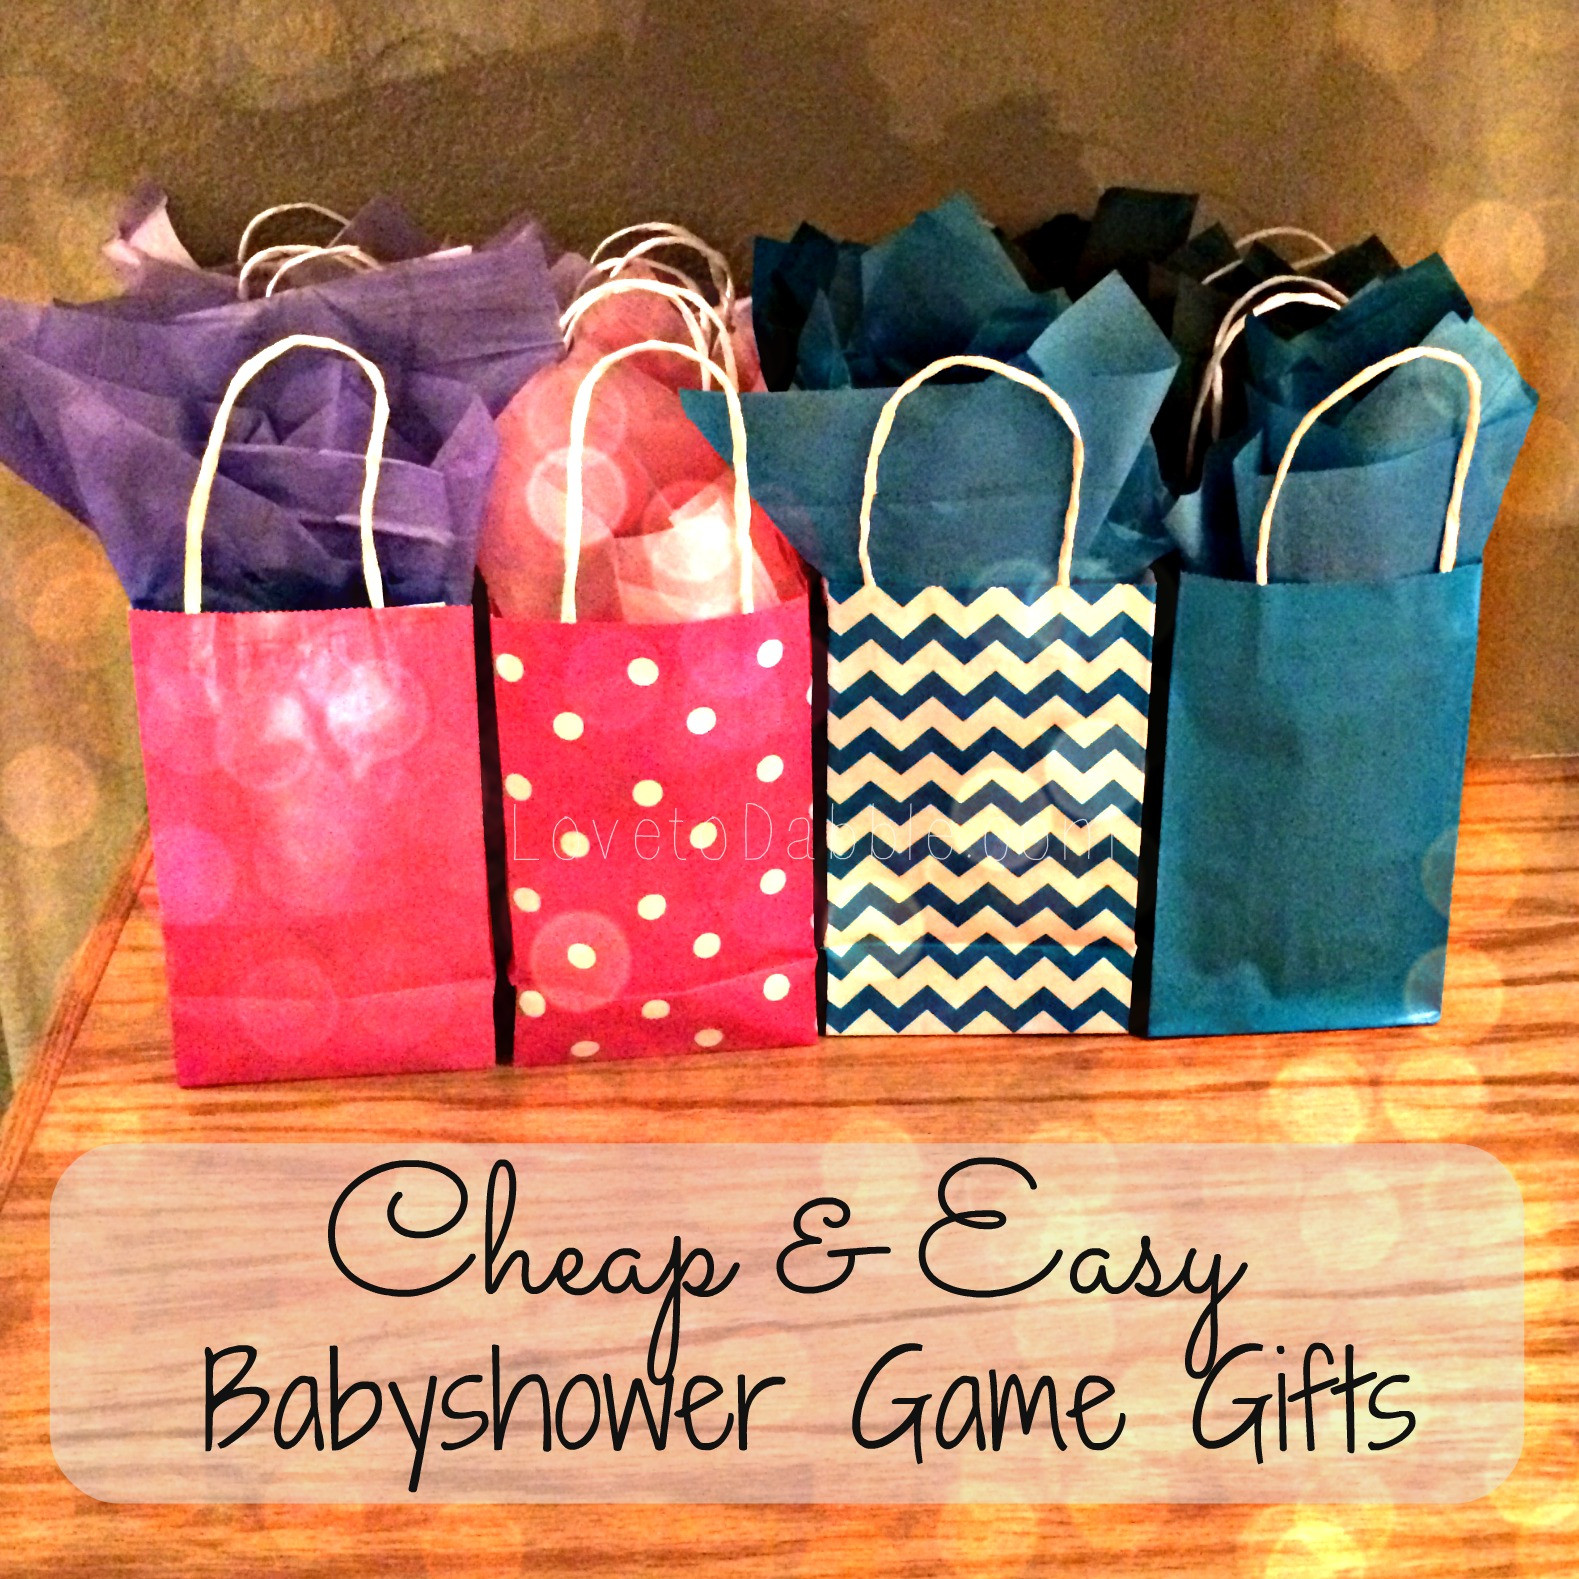 Baby Shower Game Gift Ideas  List Baby Shower Image